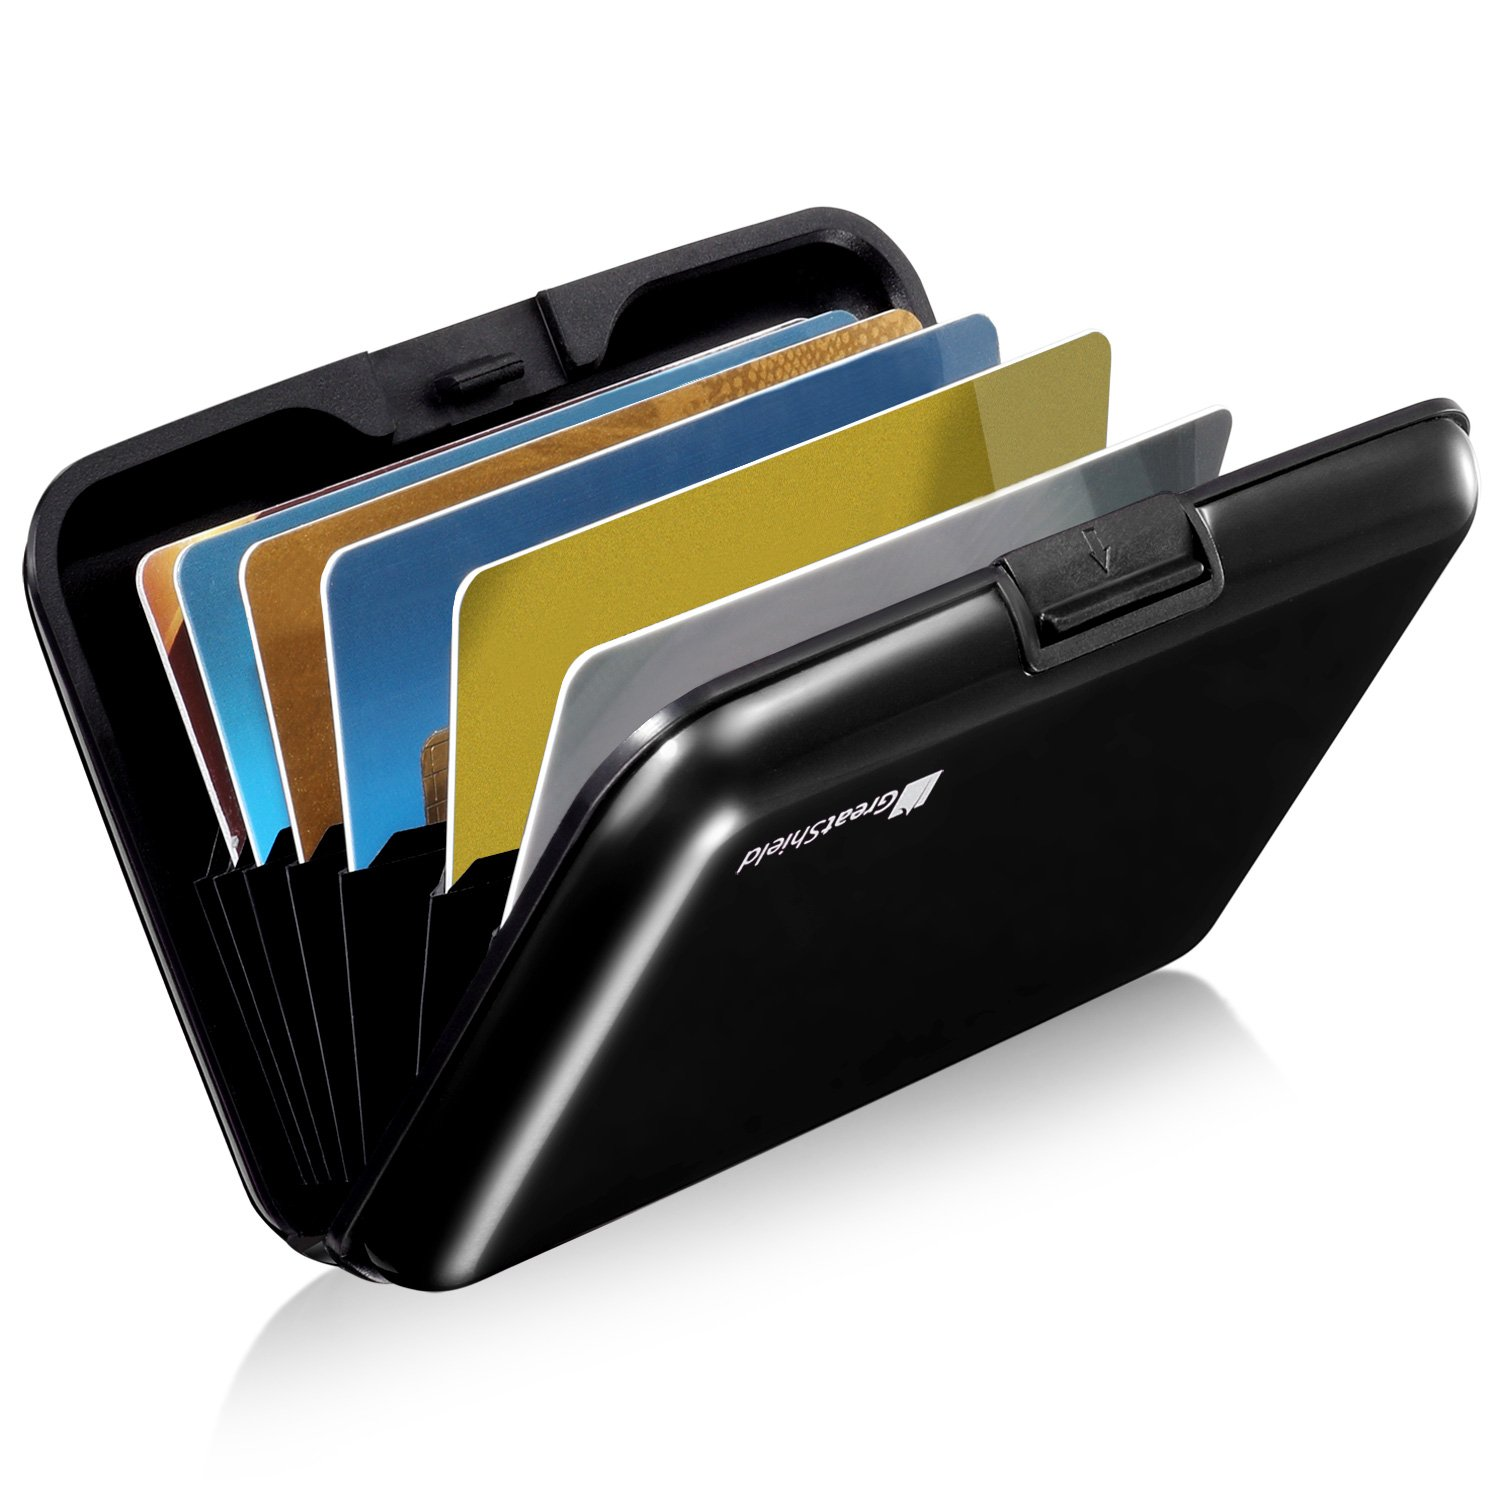 Amazon Cards & Card Stock Stationery & fice Supplies